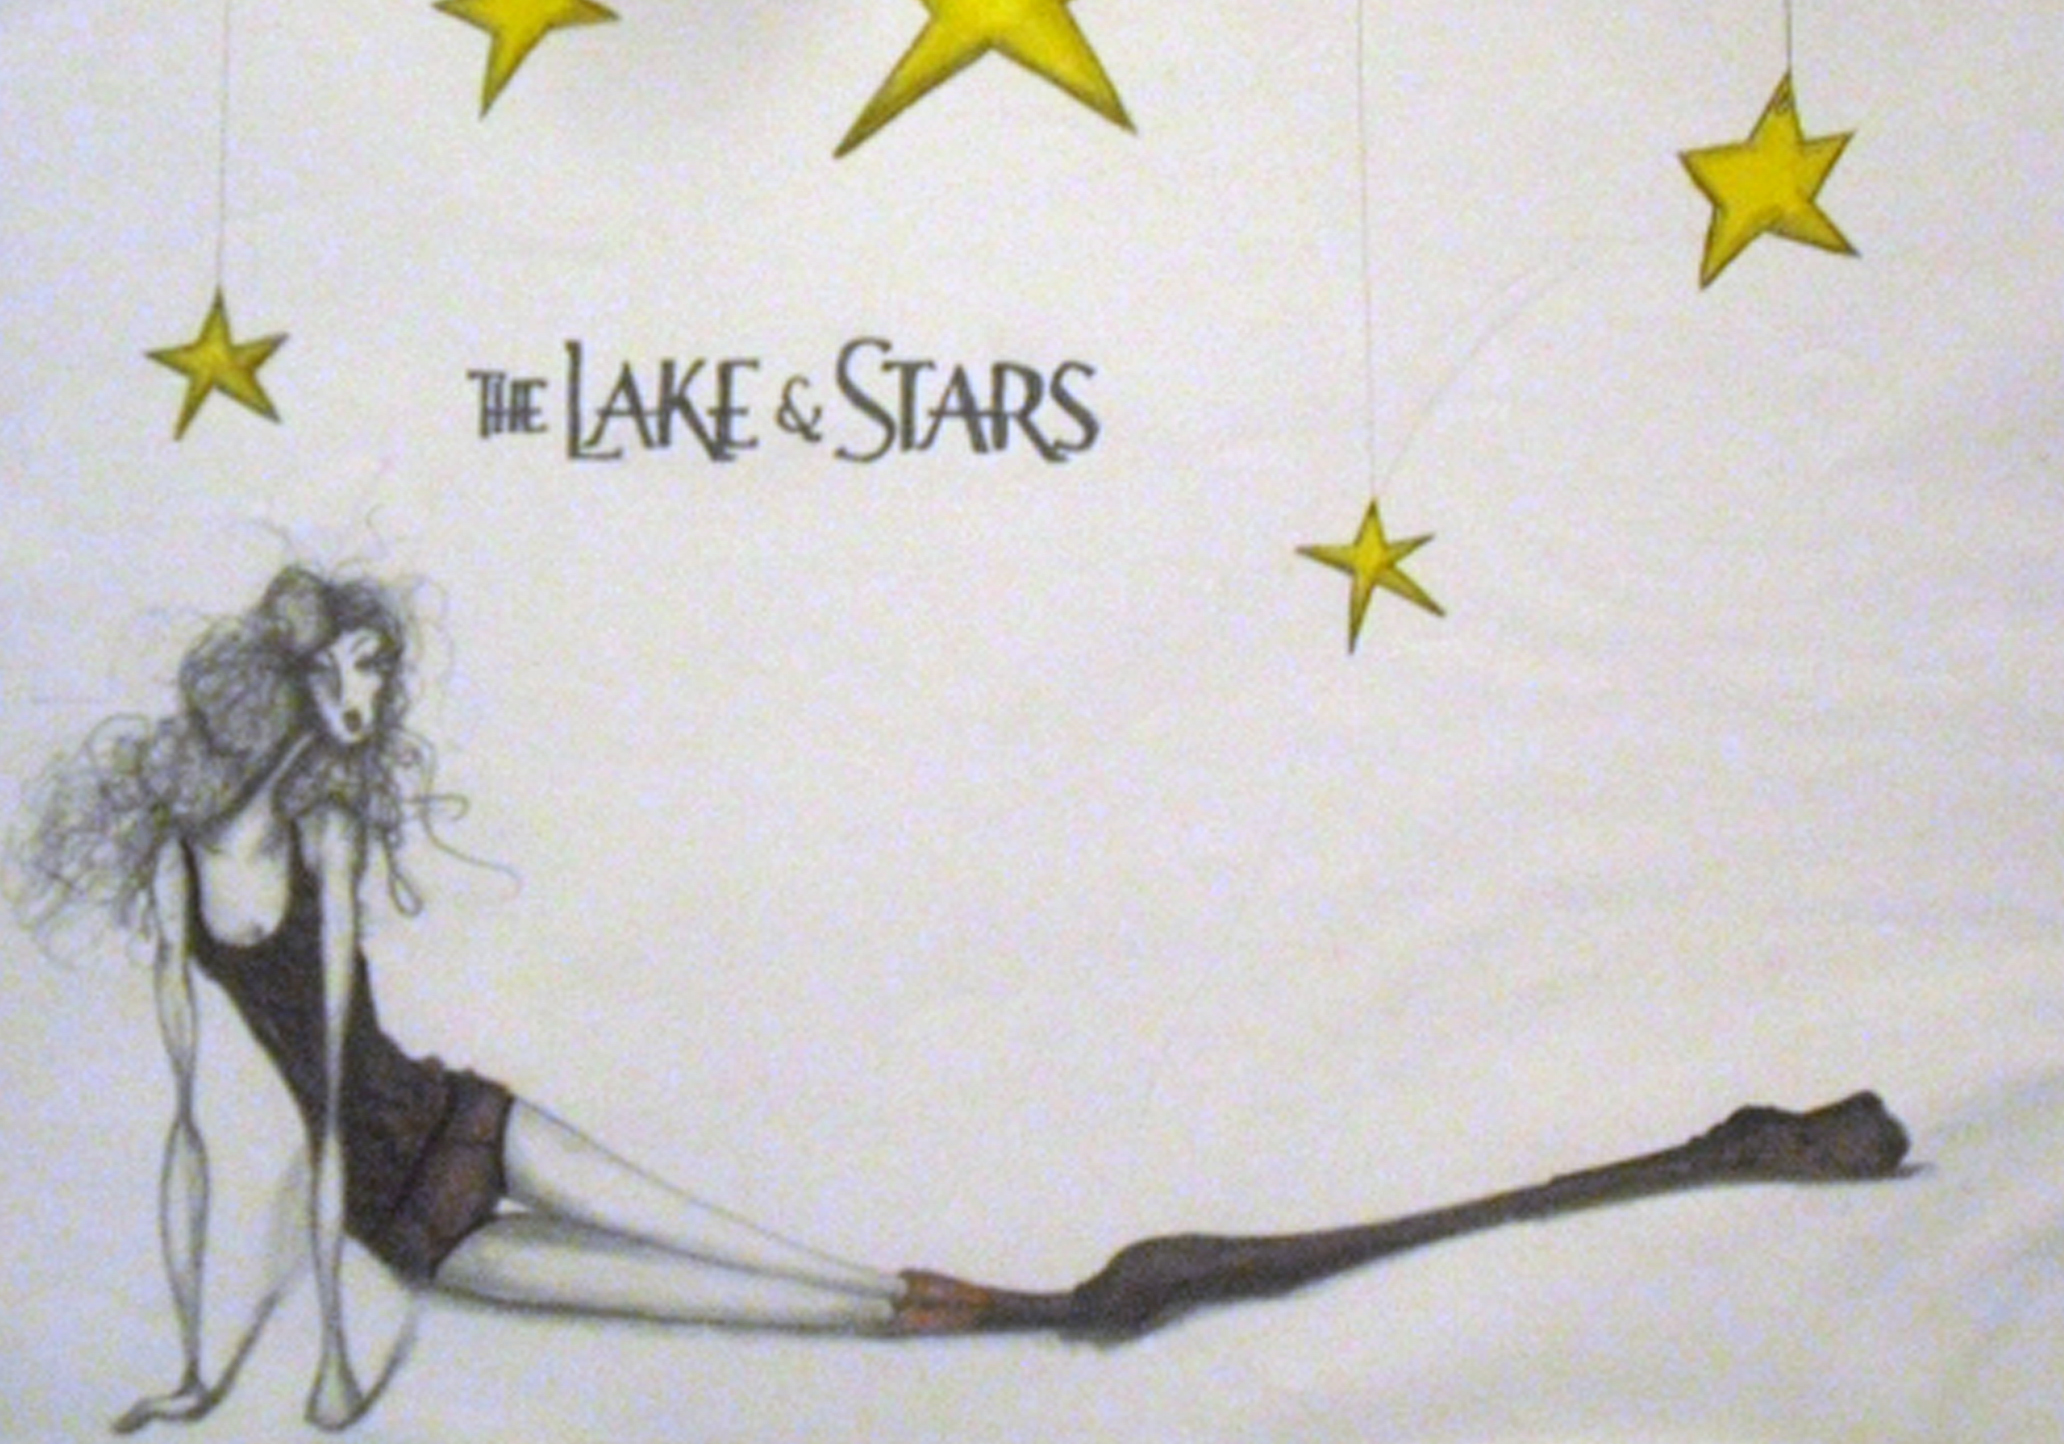 The Lake and Stars  Ad Campaign